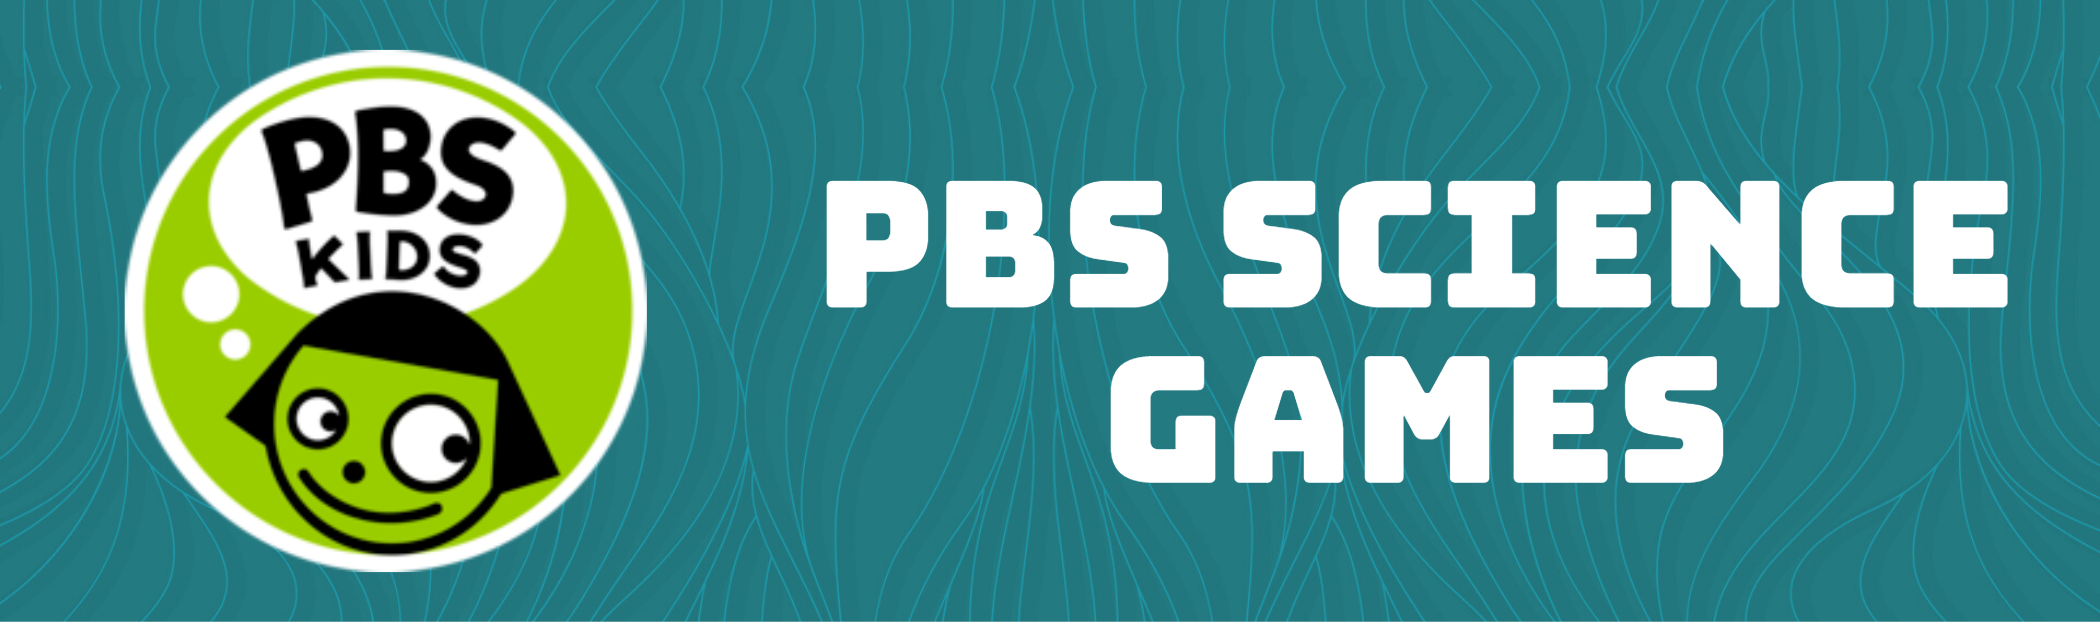 PBS Science Games